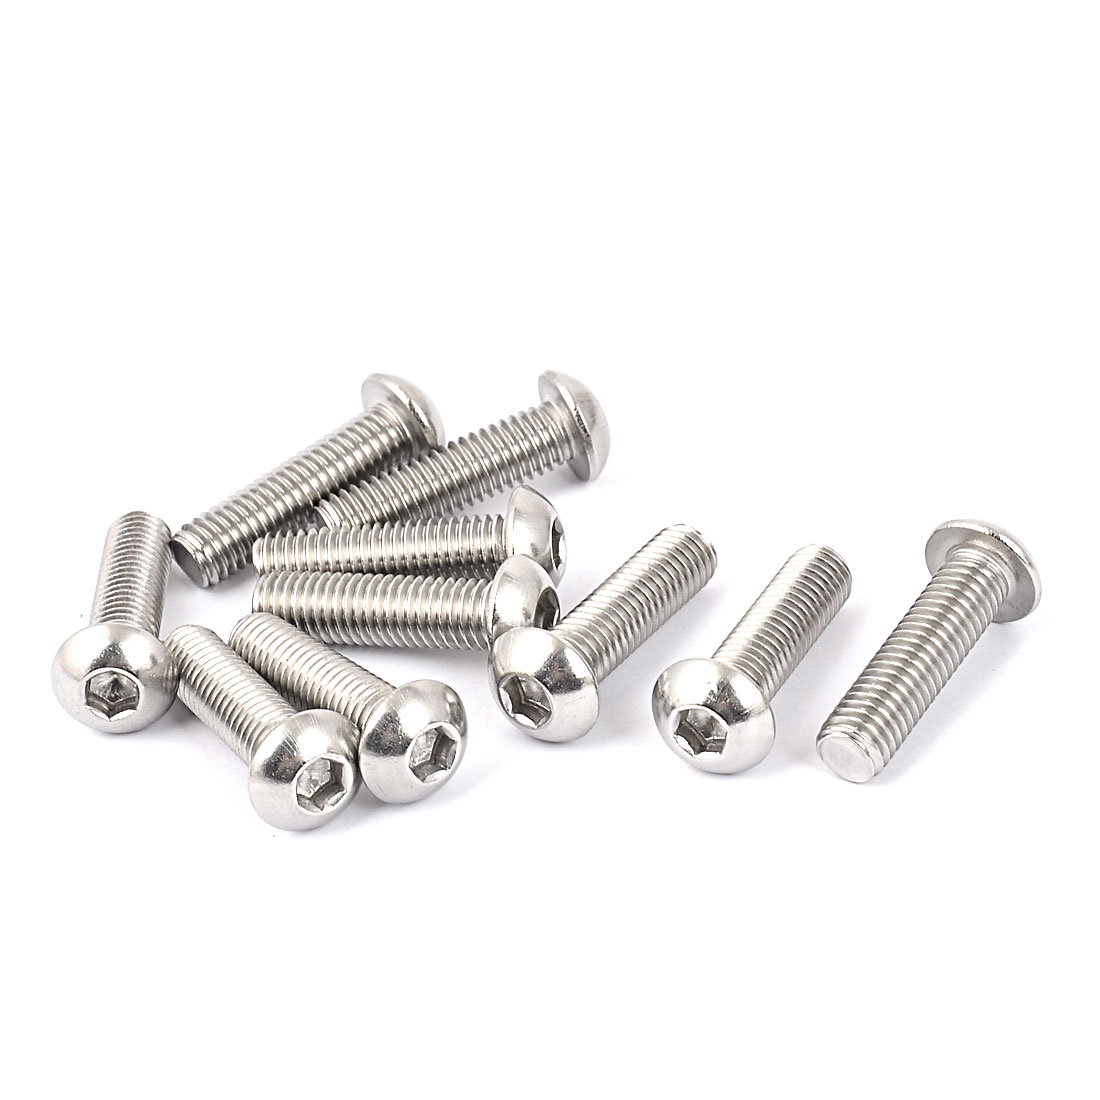 Full Thread Stainless Steel Button Head Socket Cap Screw Silver Tone M8 x 30mm 10 Pcs